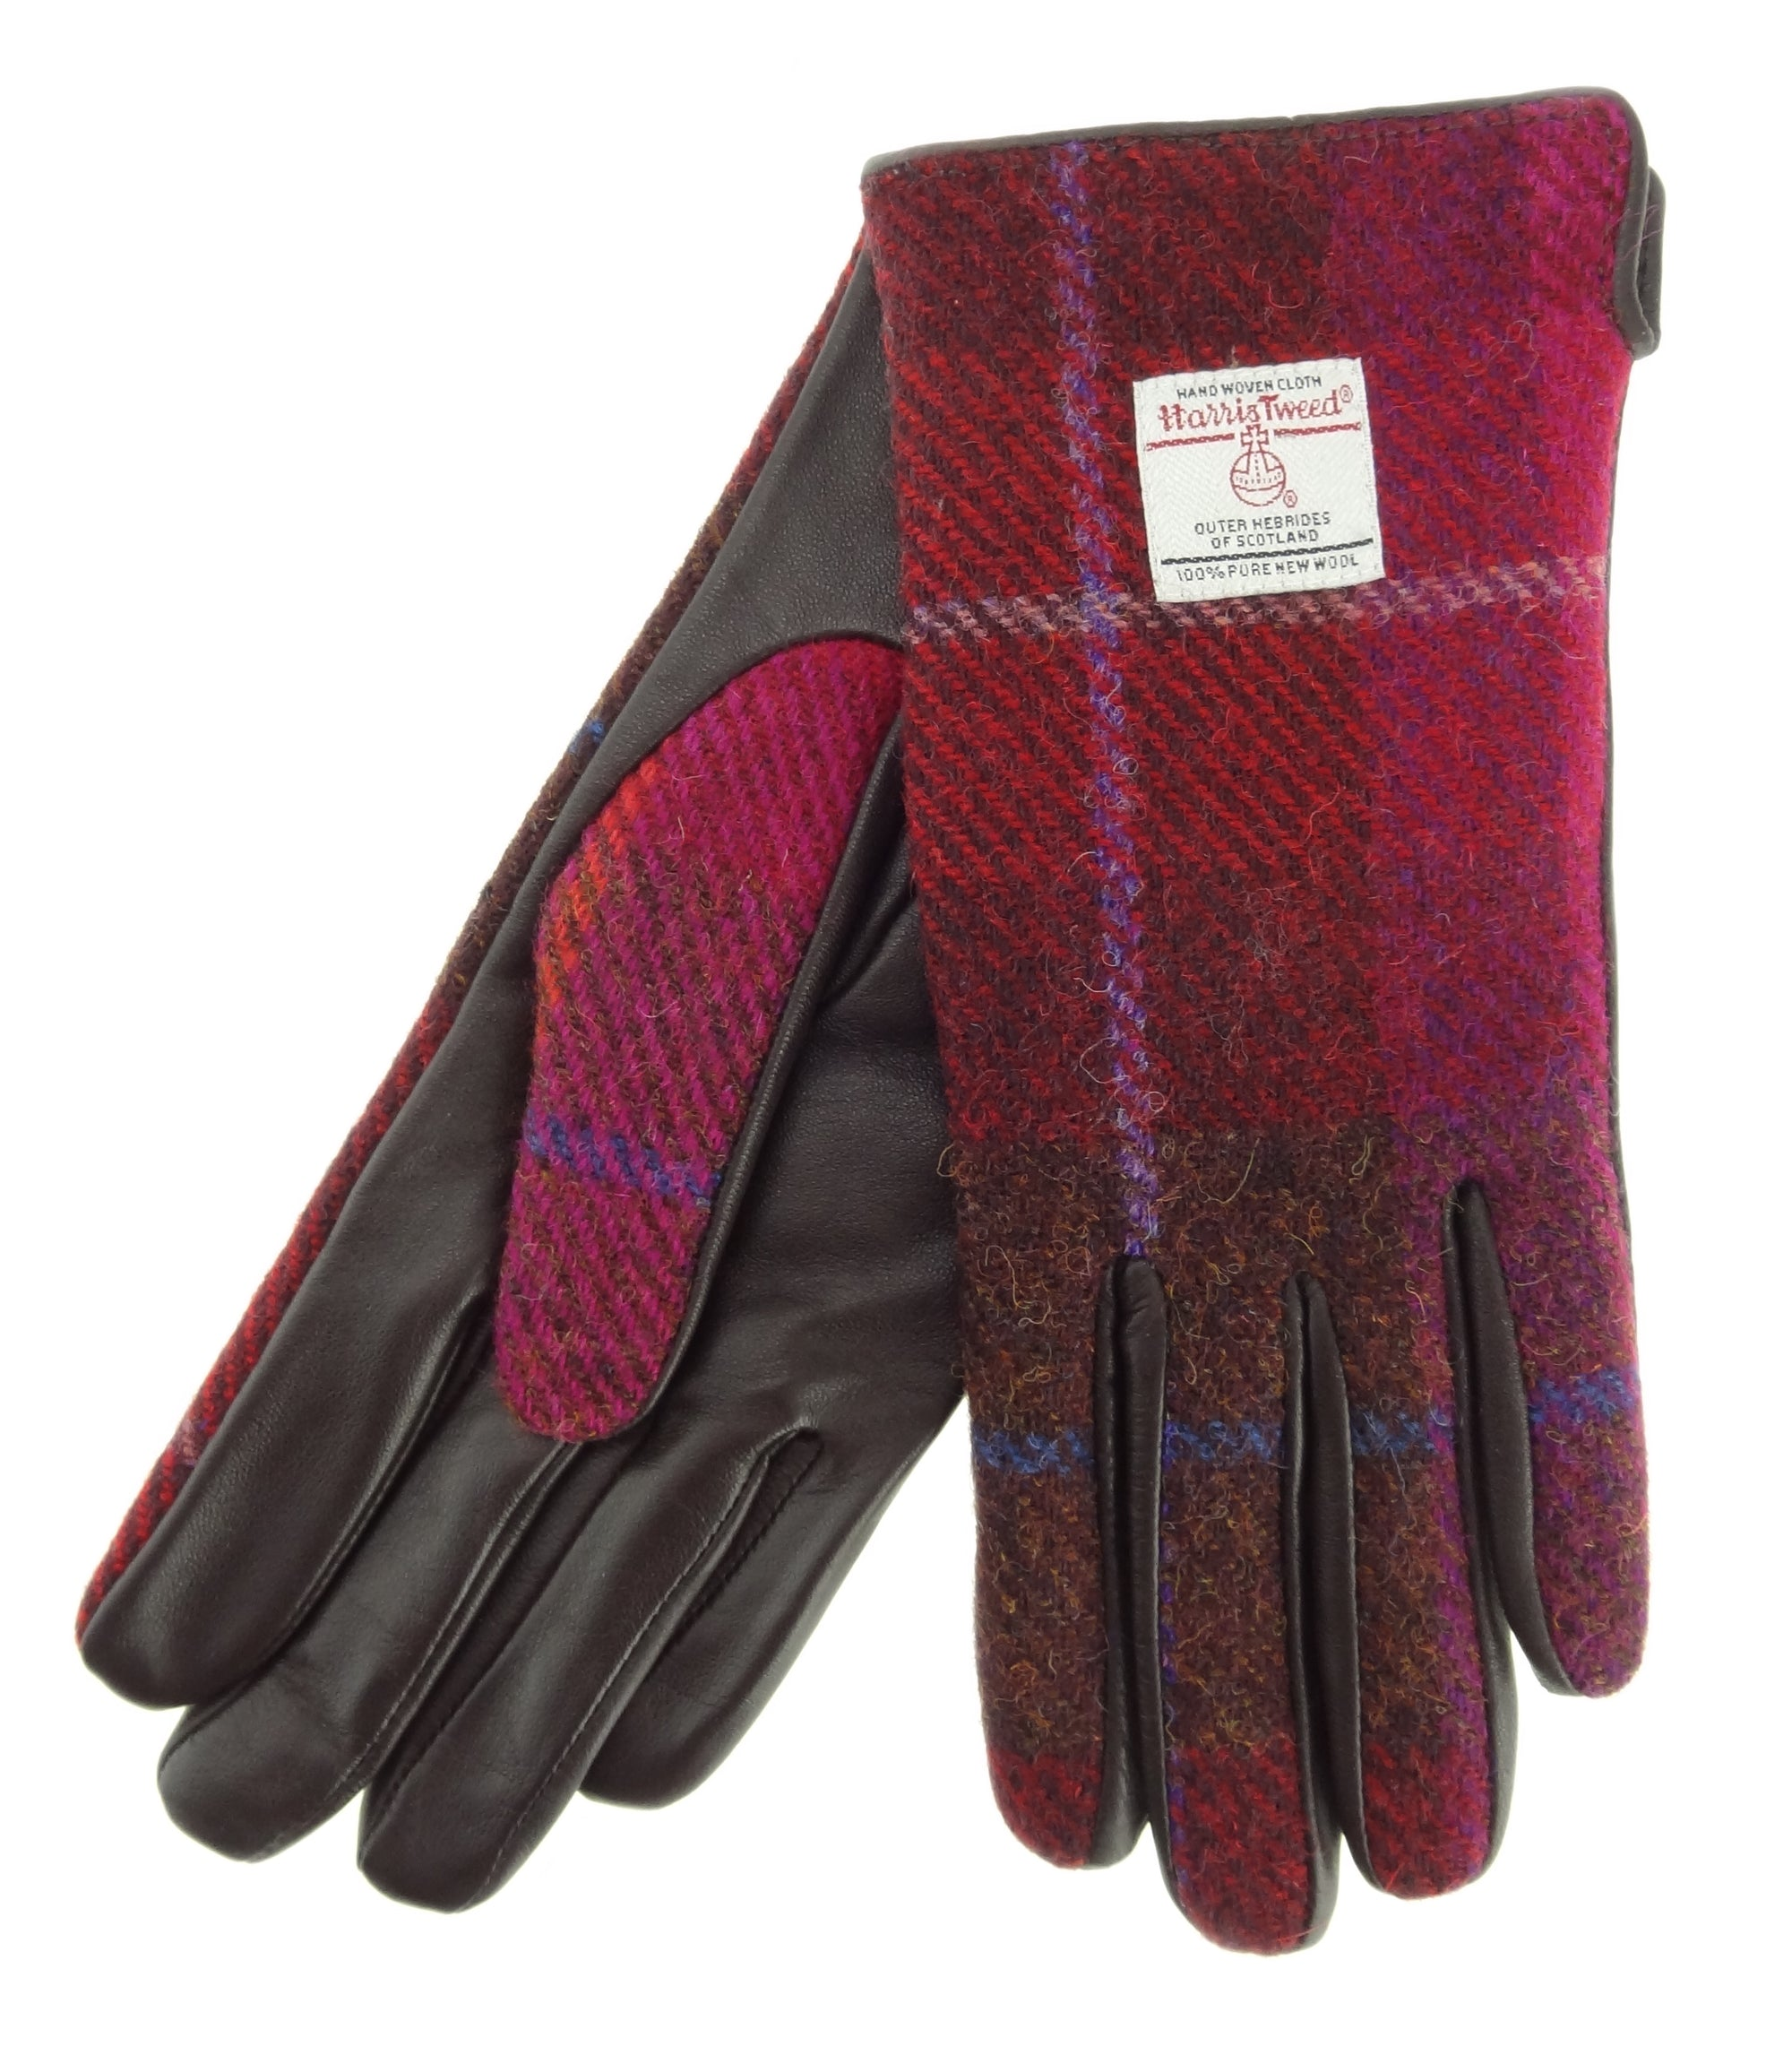 Womens Harris Tweed Gloves - Brown Leather LB3001